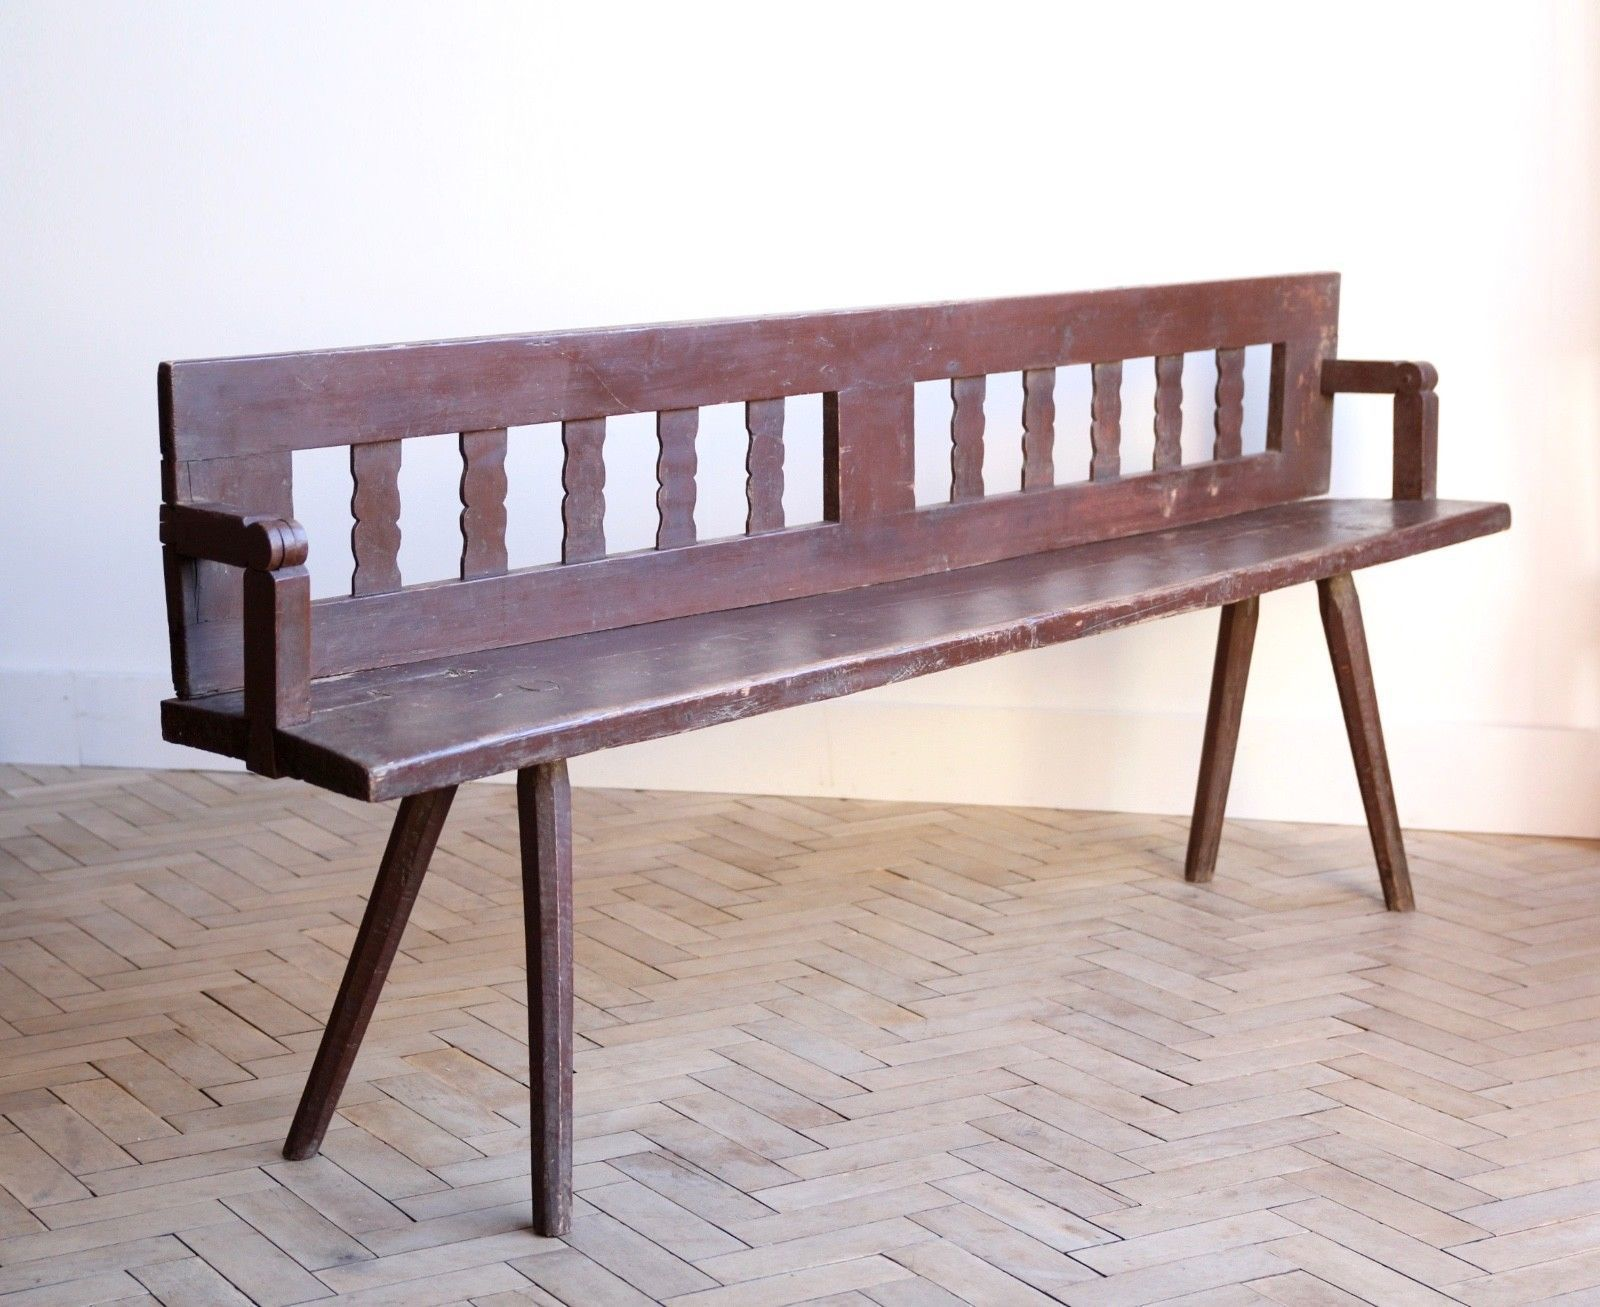 Astounding Vintage Folky Wooden Transylvanian Garden Bench Caraccident5 Cool Chair Designs And Ideas Caraccident5Info